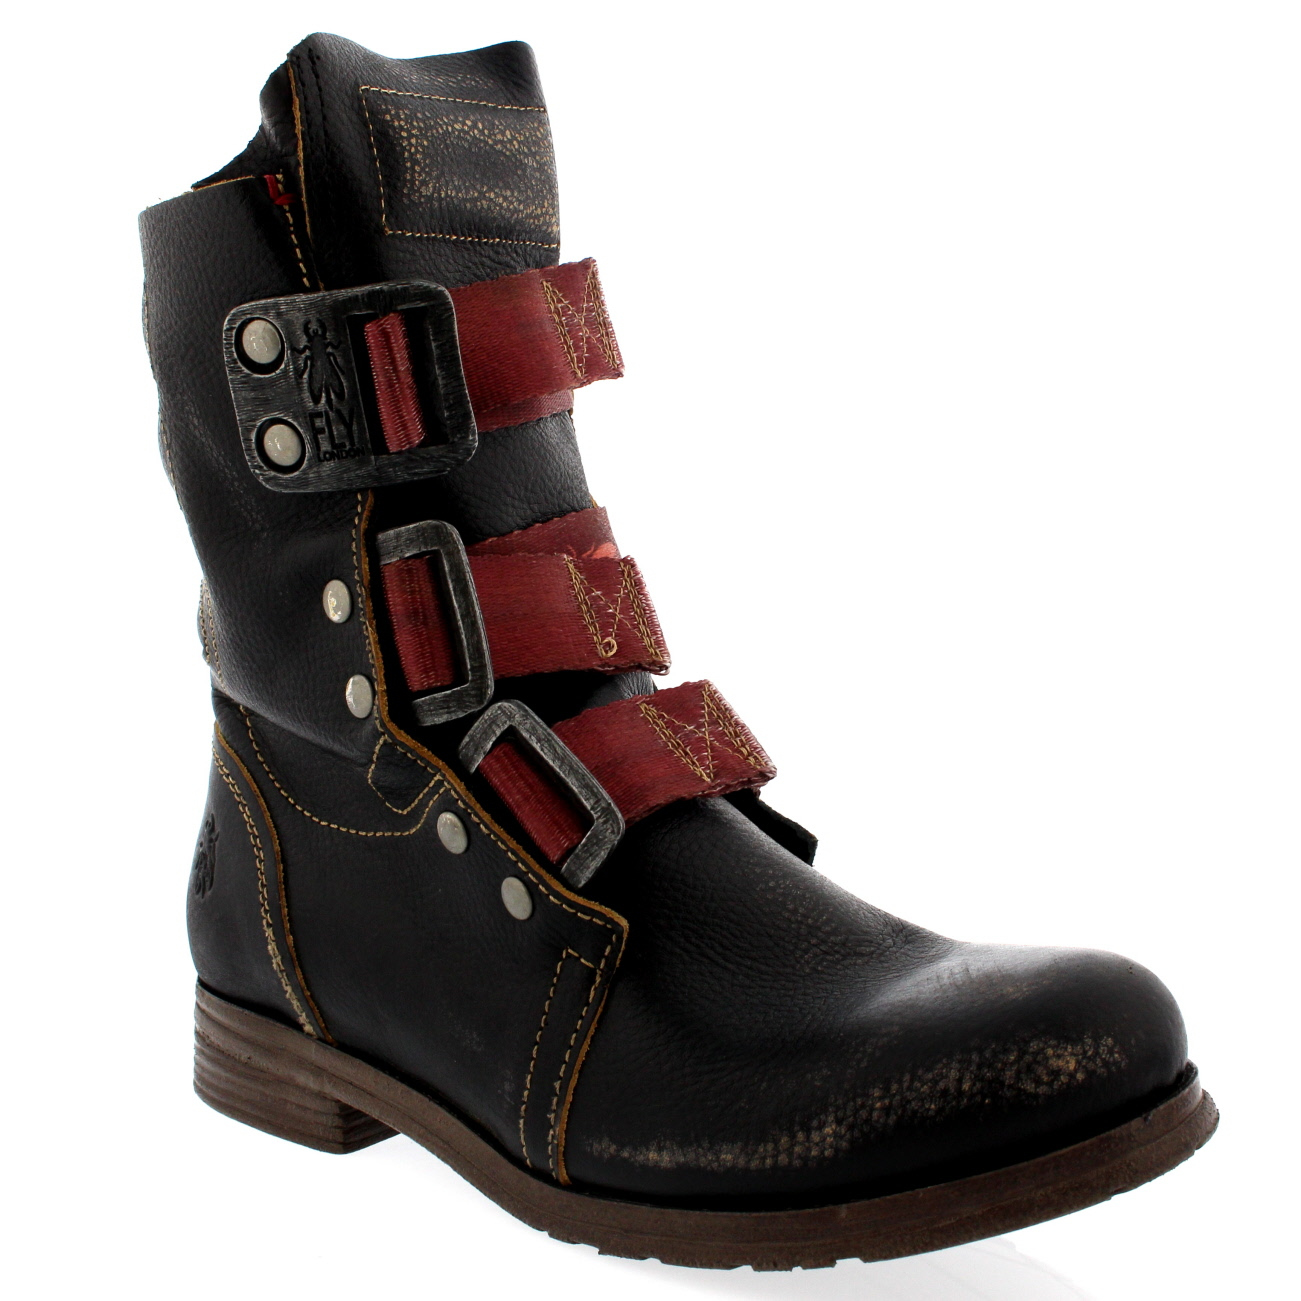 Free shipping BOTH ways on FLY LONDON, Boots, Women, from our vast selection of styles. Fast delivery, and 24/7/ real-person service with a smile. Click or call